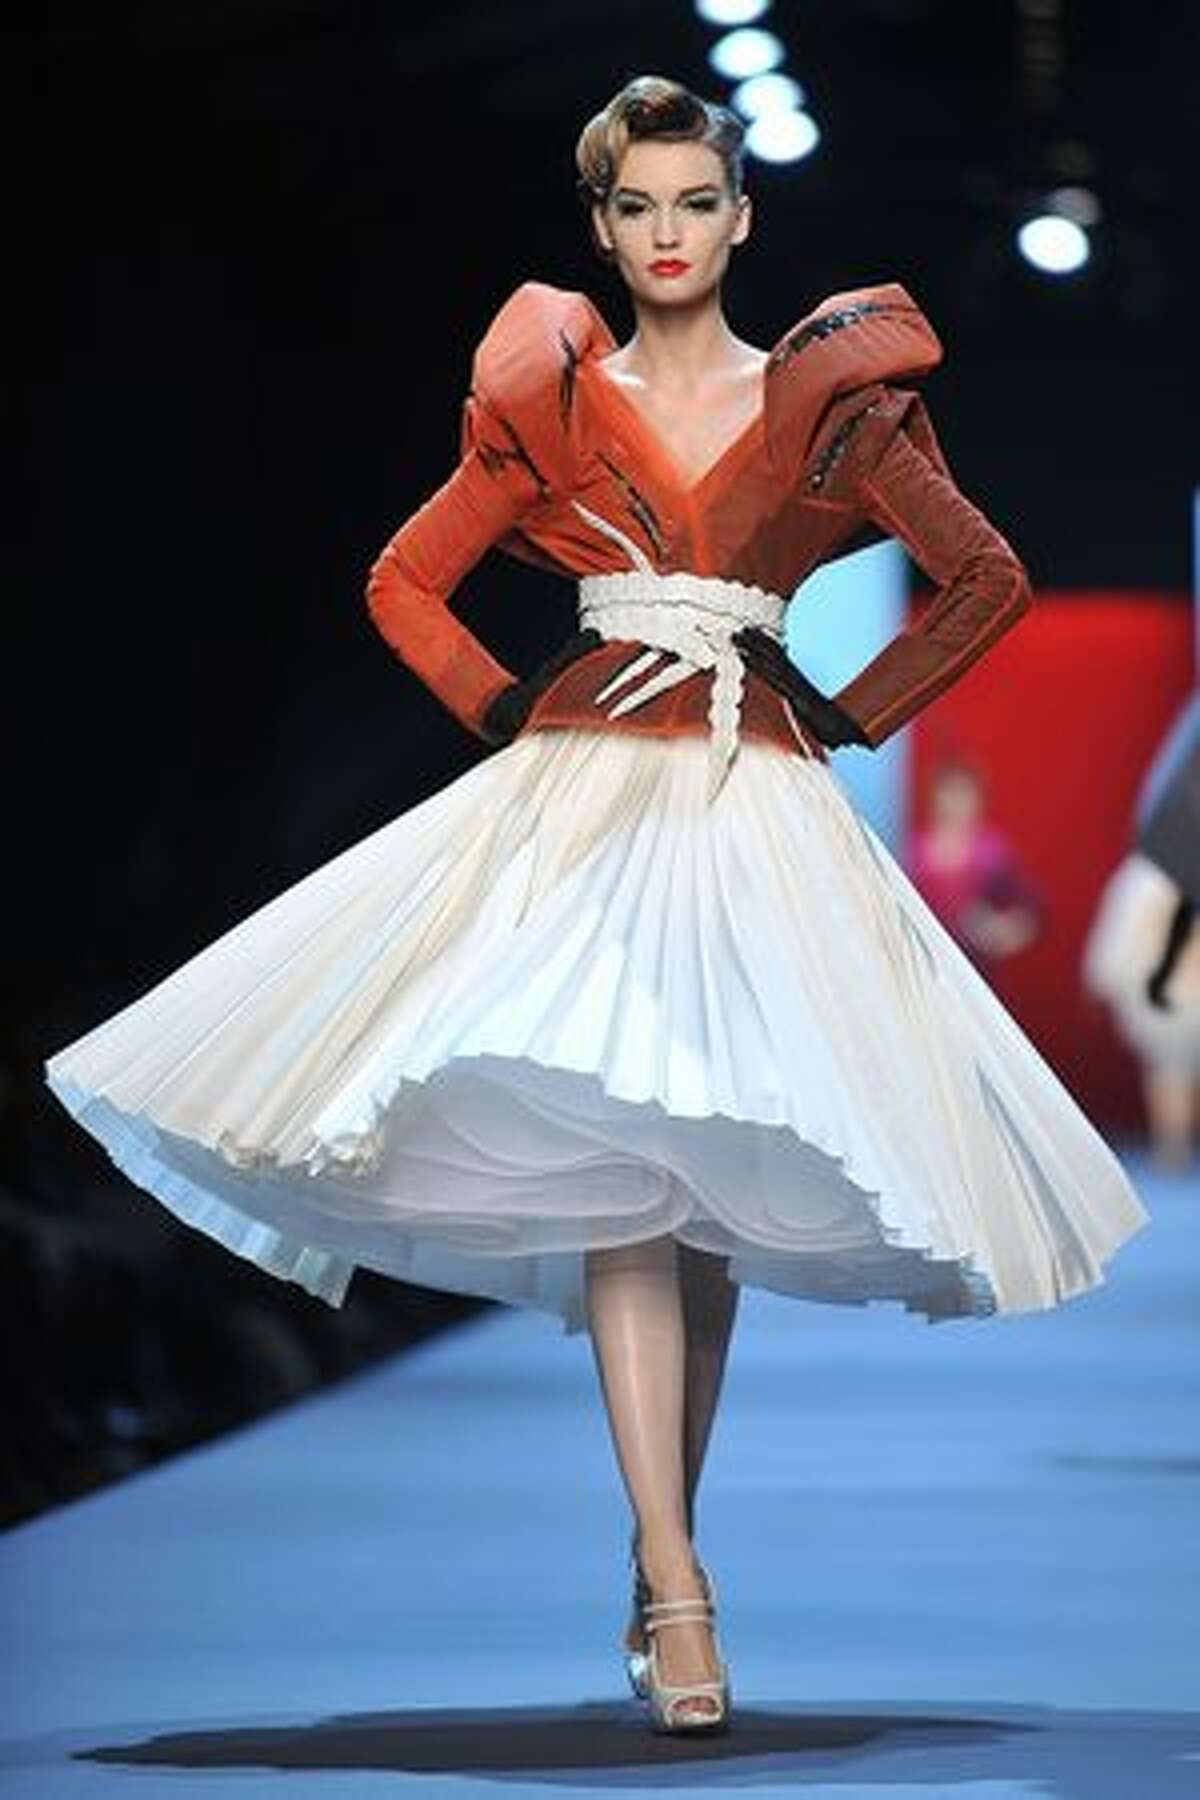 A model walks the runway during the Christian Dior show as part of the Paris Haute Couture Fashion Week Spring/Summer 2011 at Musee Rodin in Paris, France.